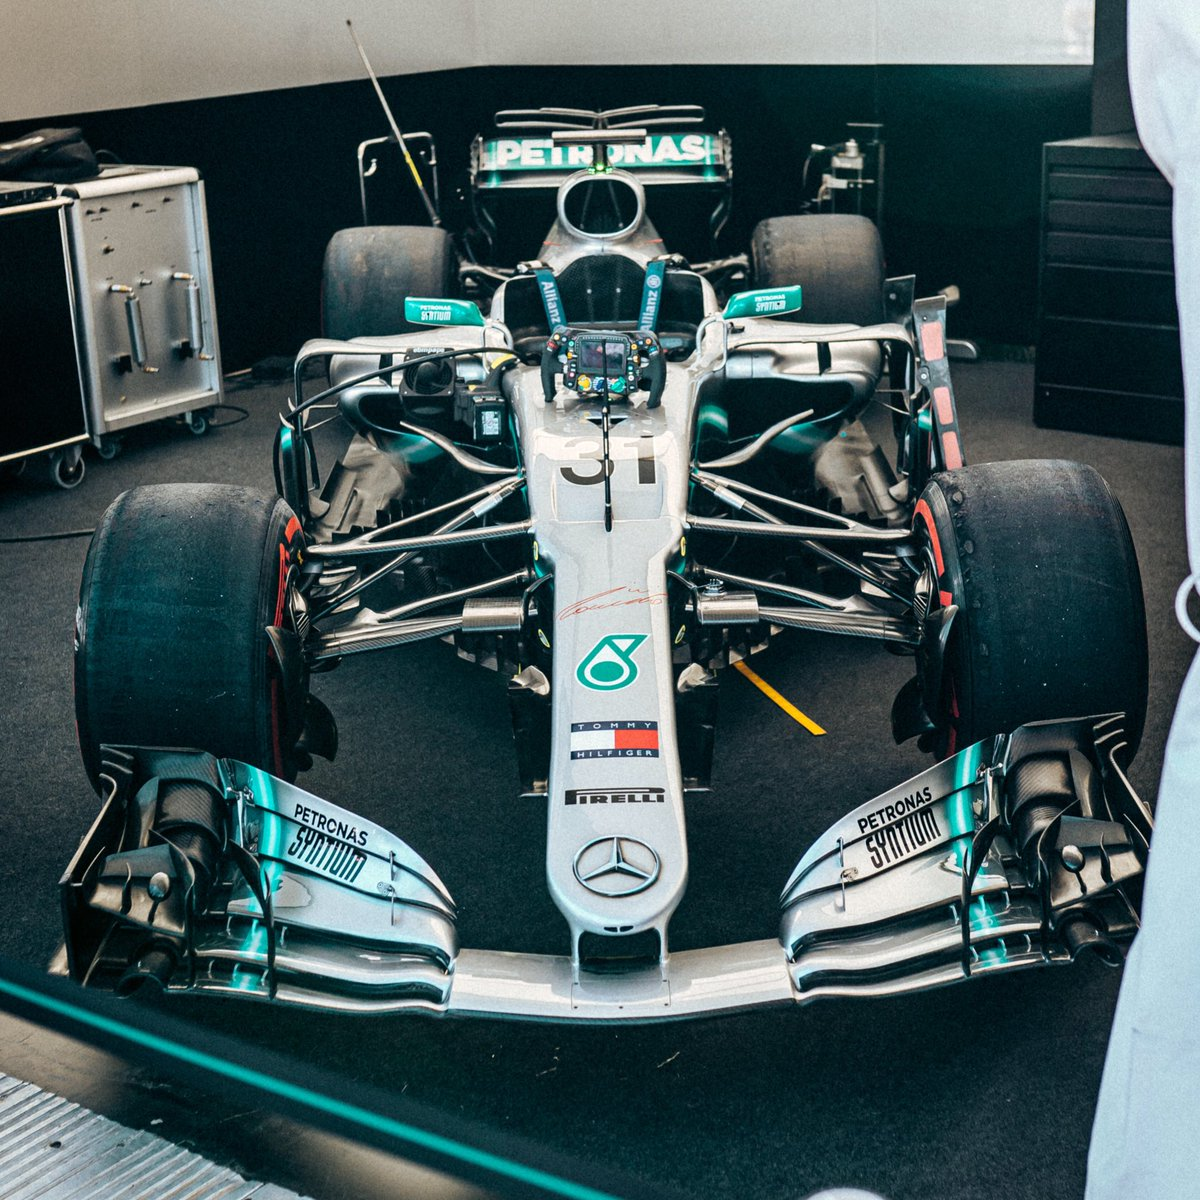 Mercedes-AMG F1 on Twitter: